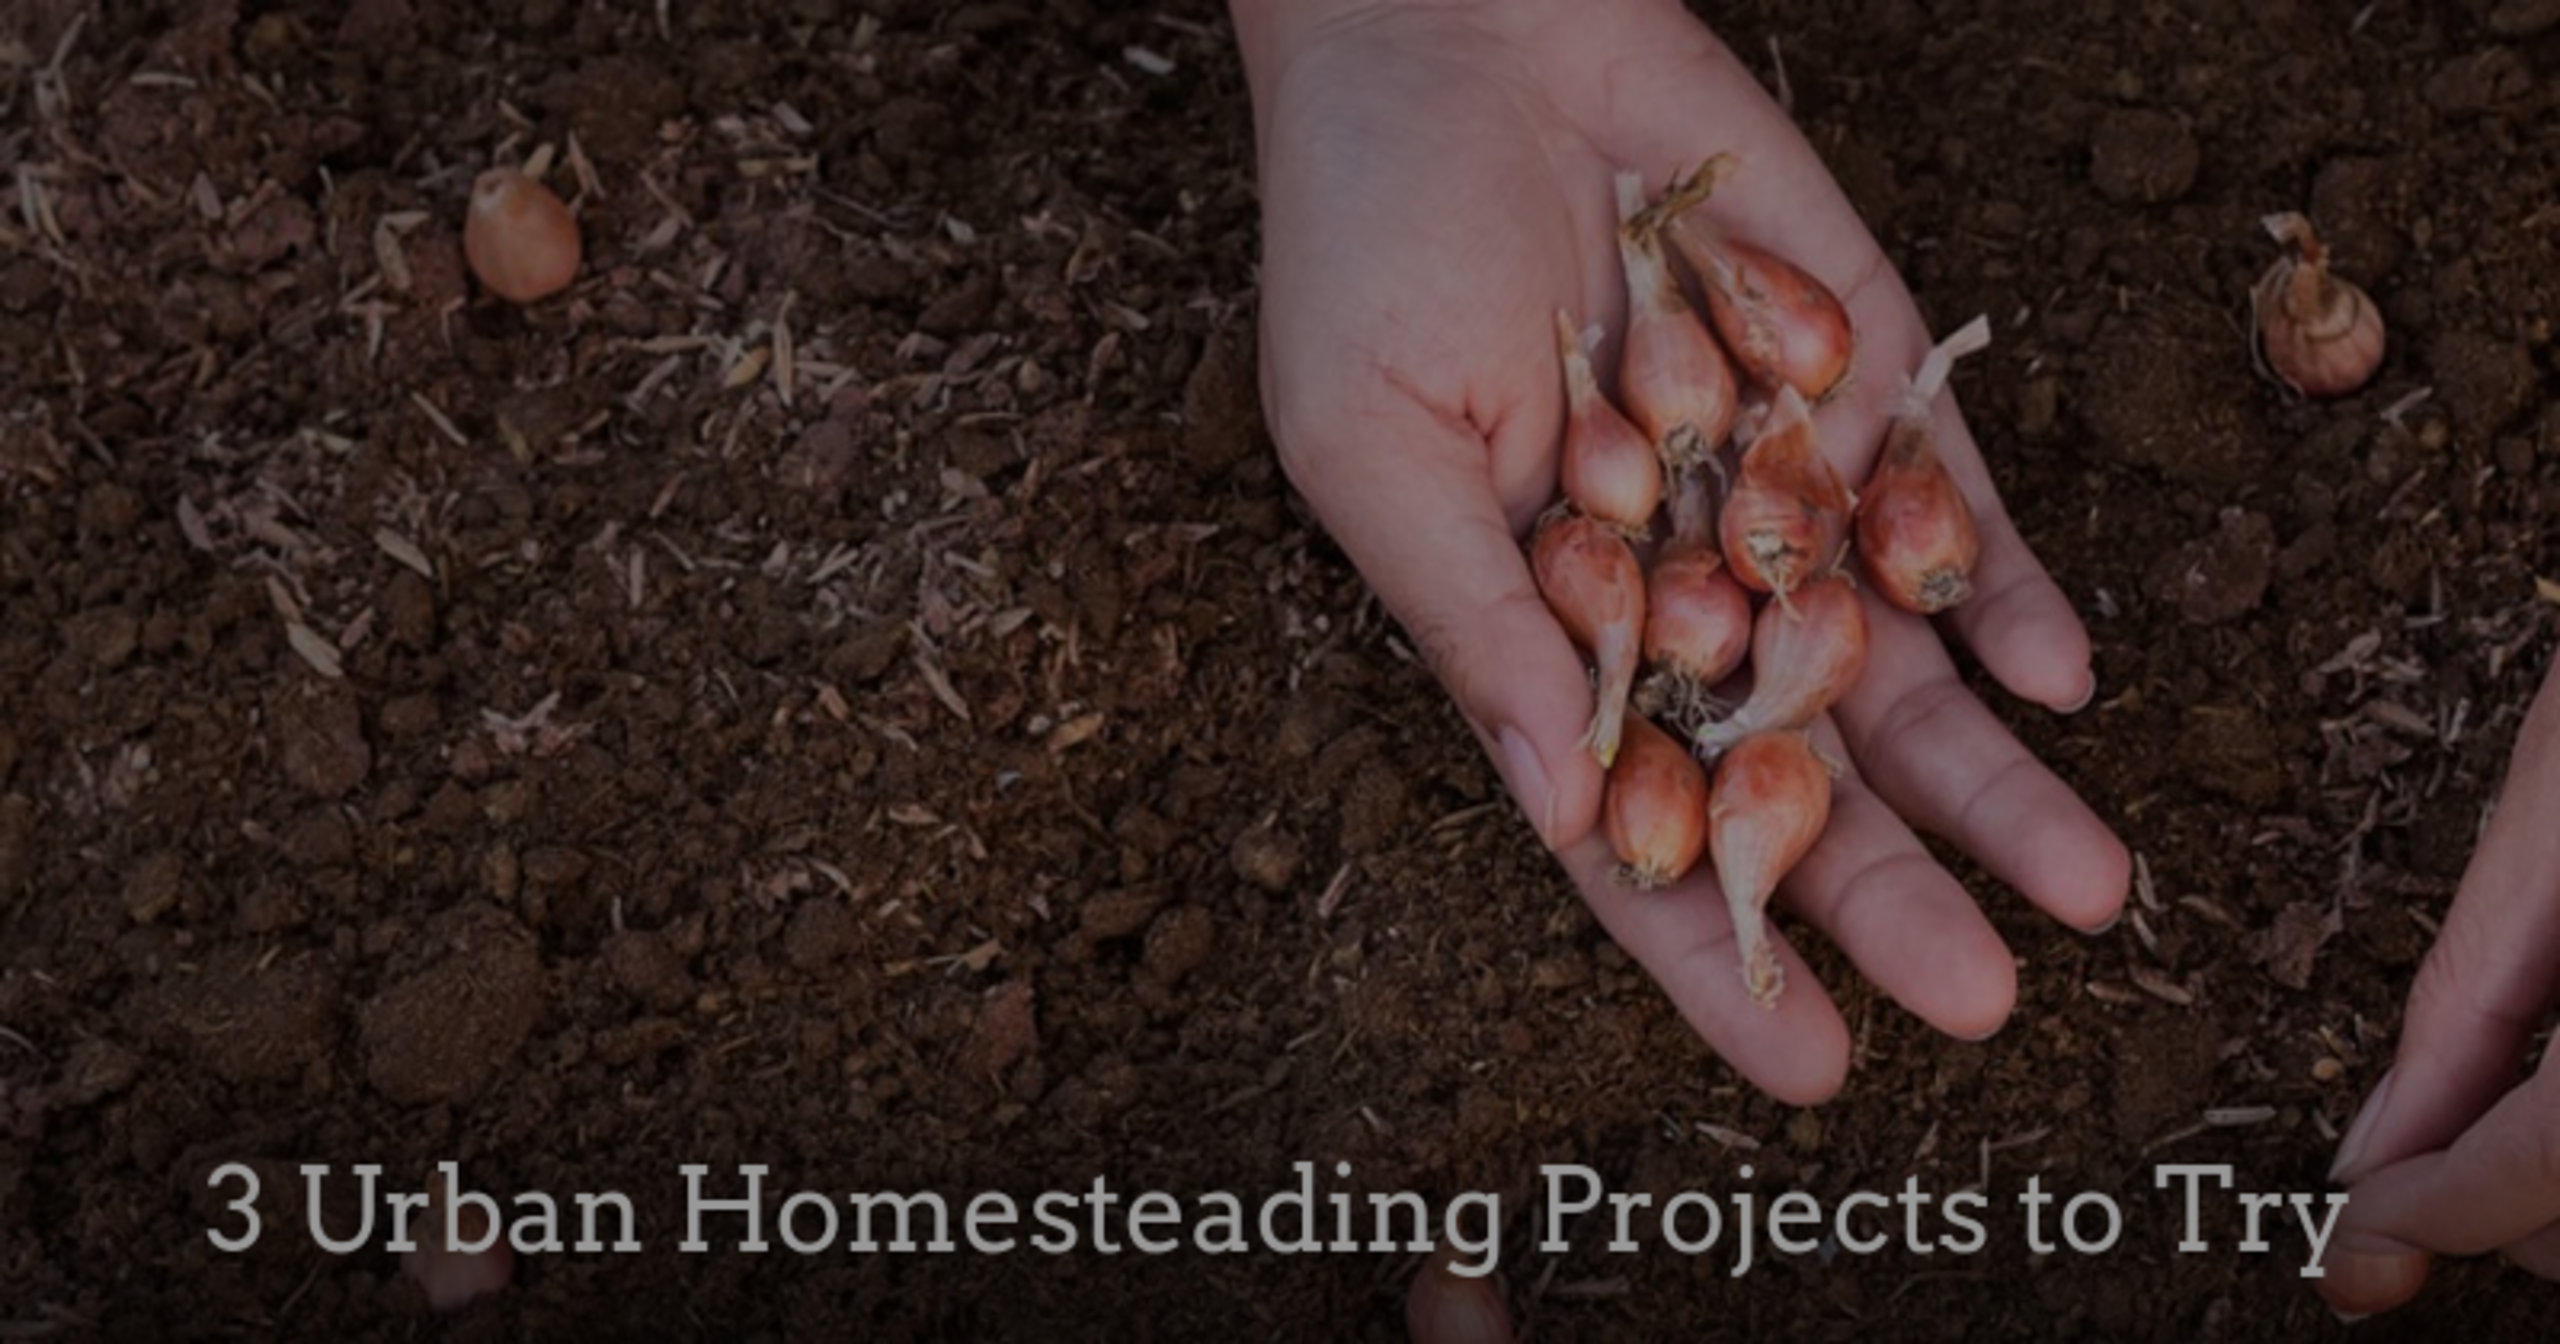 3 Urban Homesteading Projects to Try